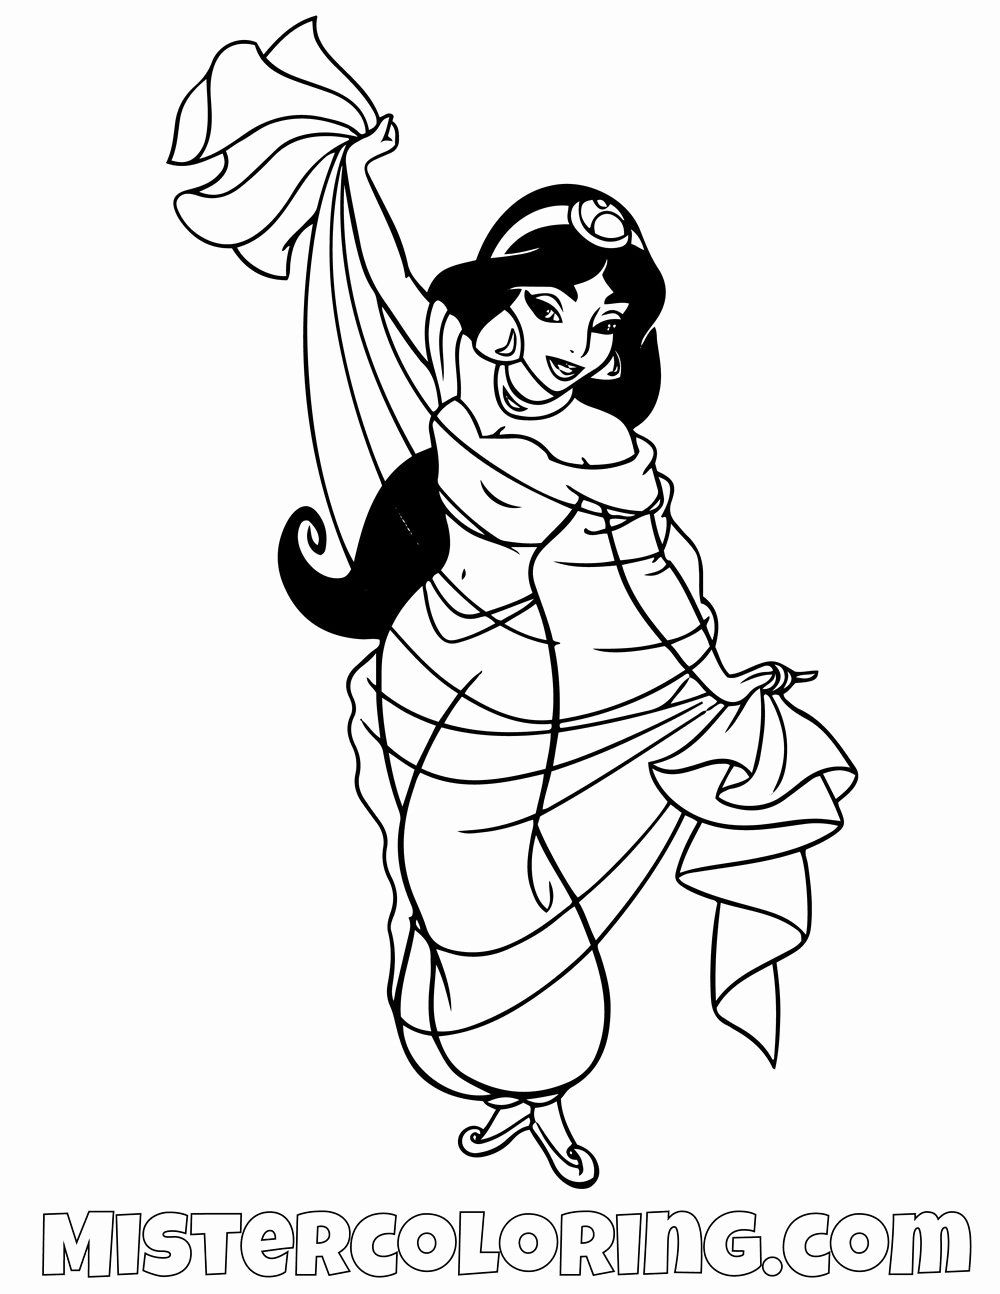 Princess Jasmine Coloring Sheets Inspirational Aladdin Coloring Pages For Kids Disney Princess Coloring Pages Princess Coloring Pages Disney Princess Colors